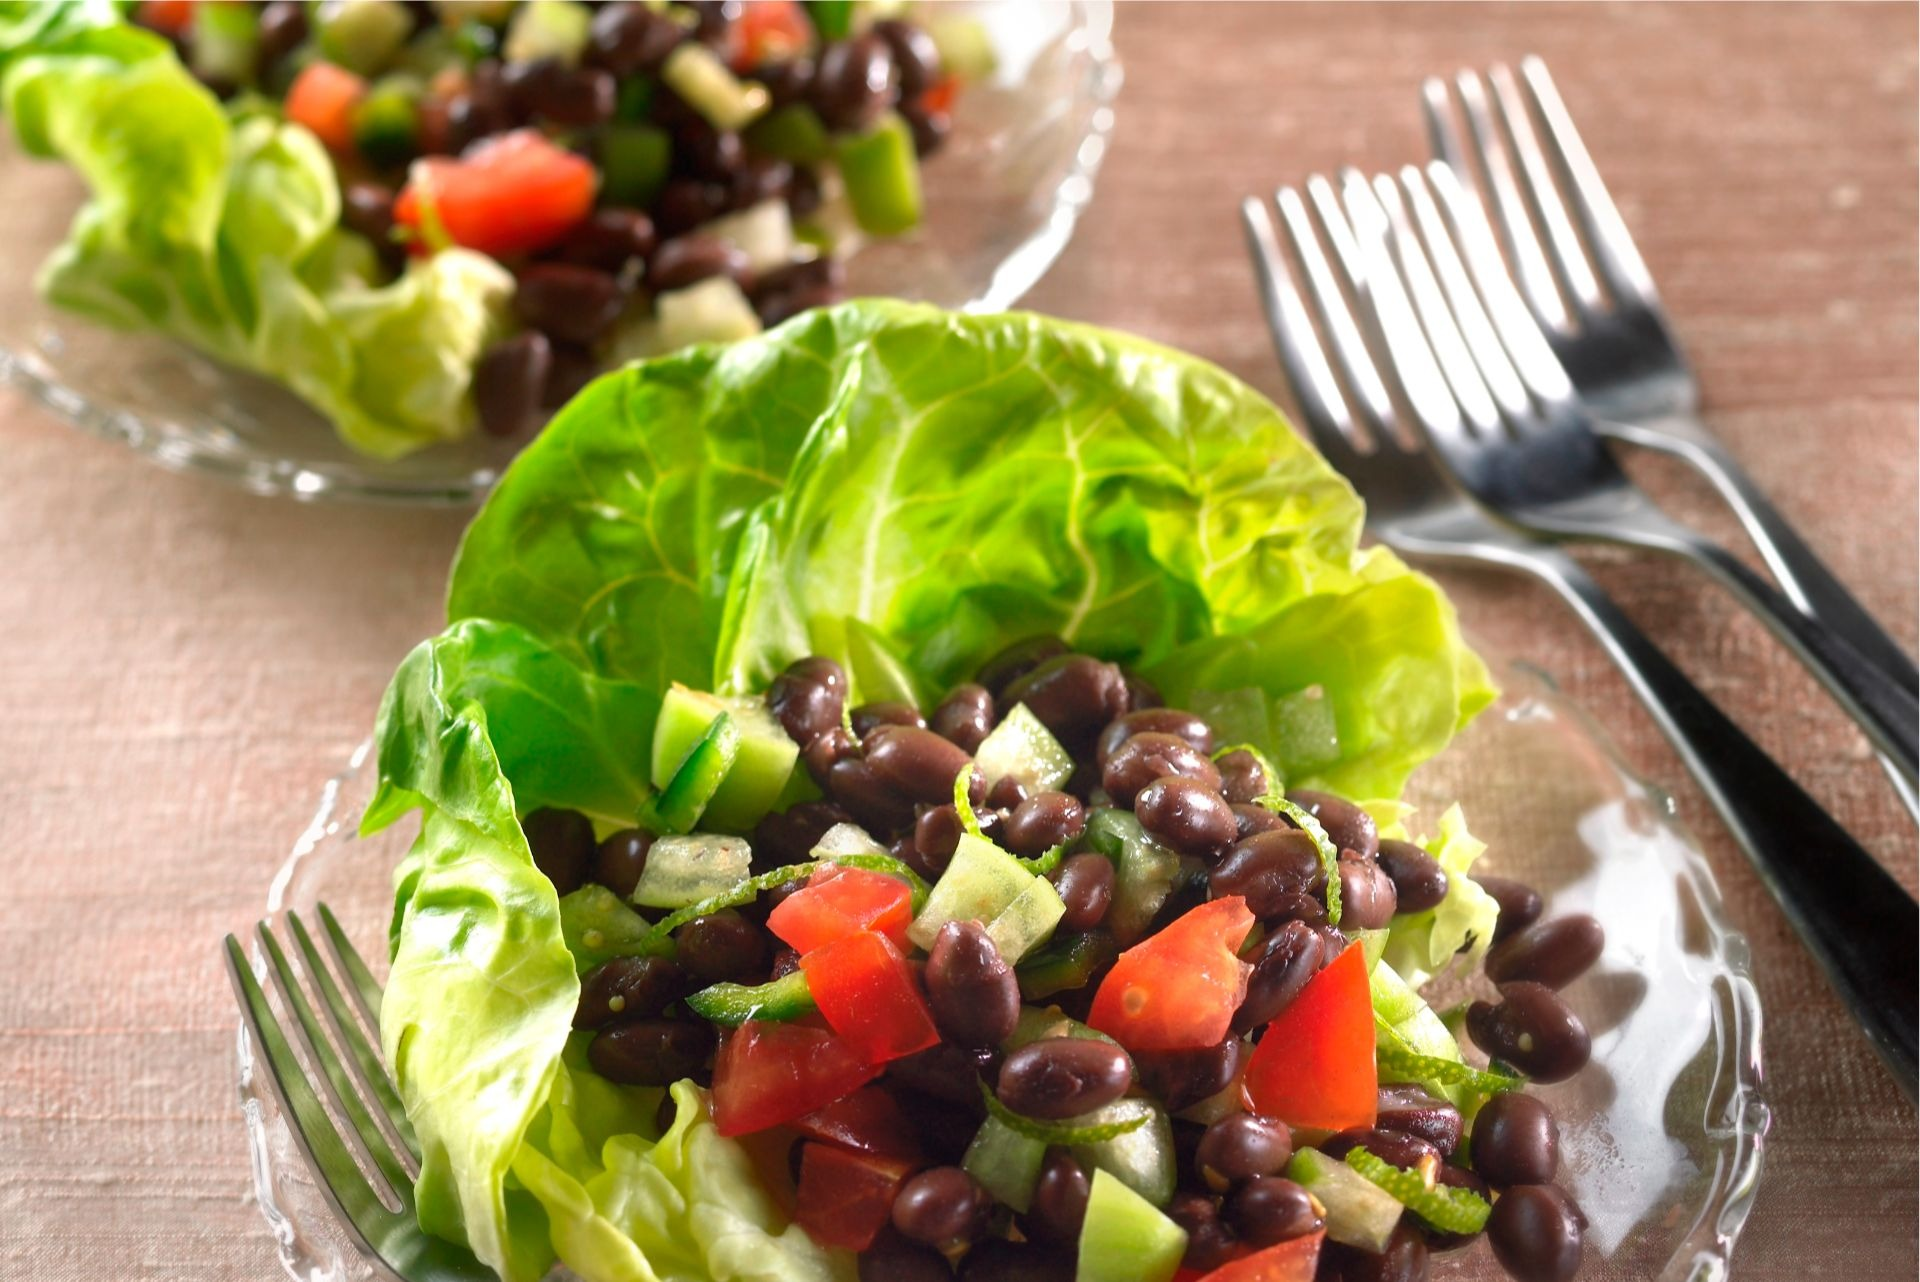 Lime-zested tomatillo-black bean salad on lettuce leaves.